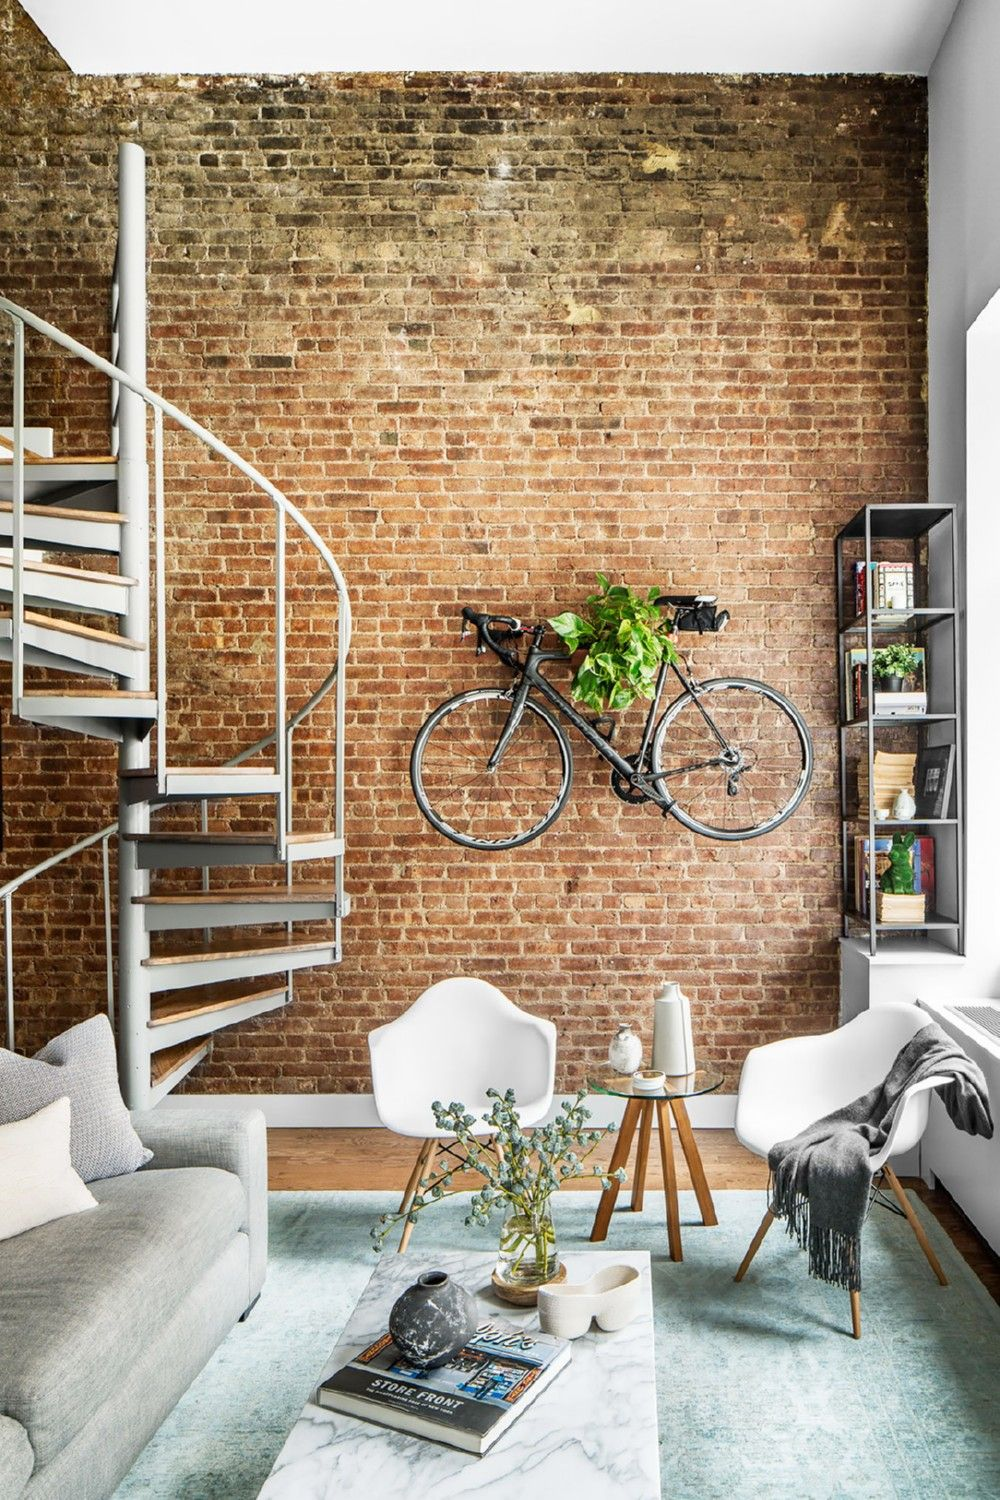 Home interior names awesome  home interior designs with exposed brick walls ideas